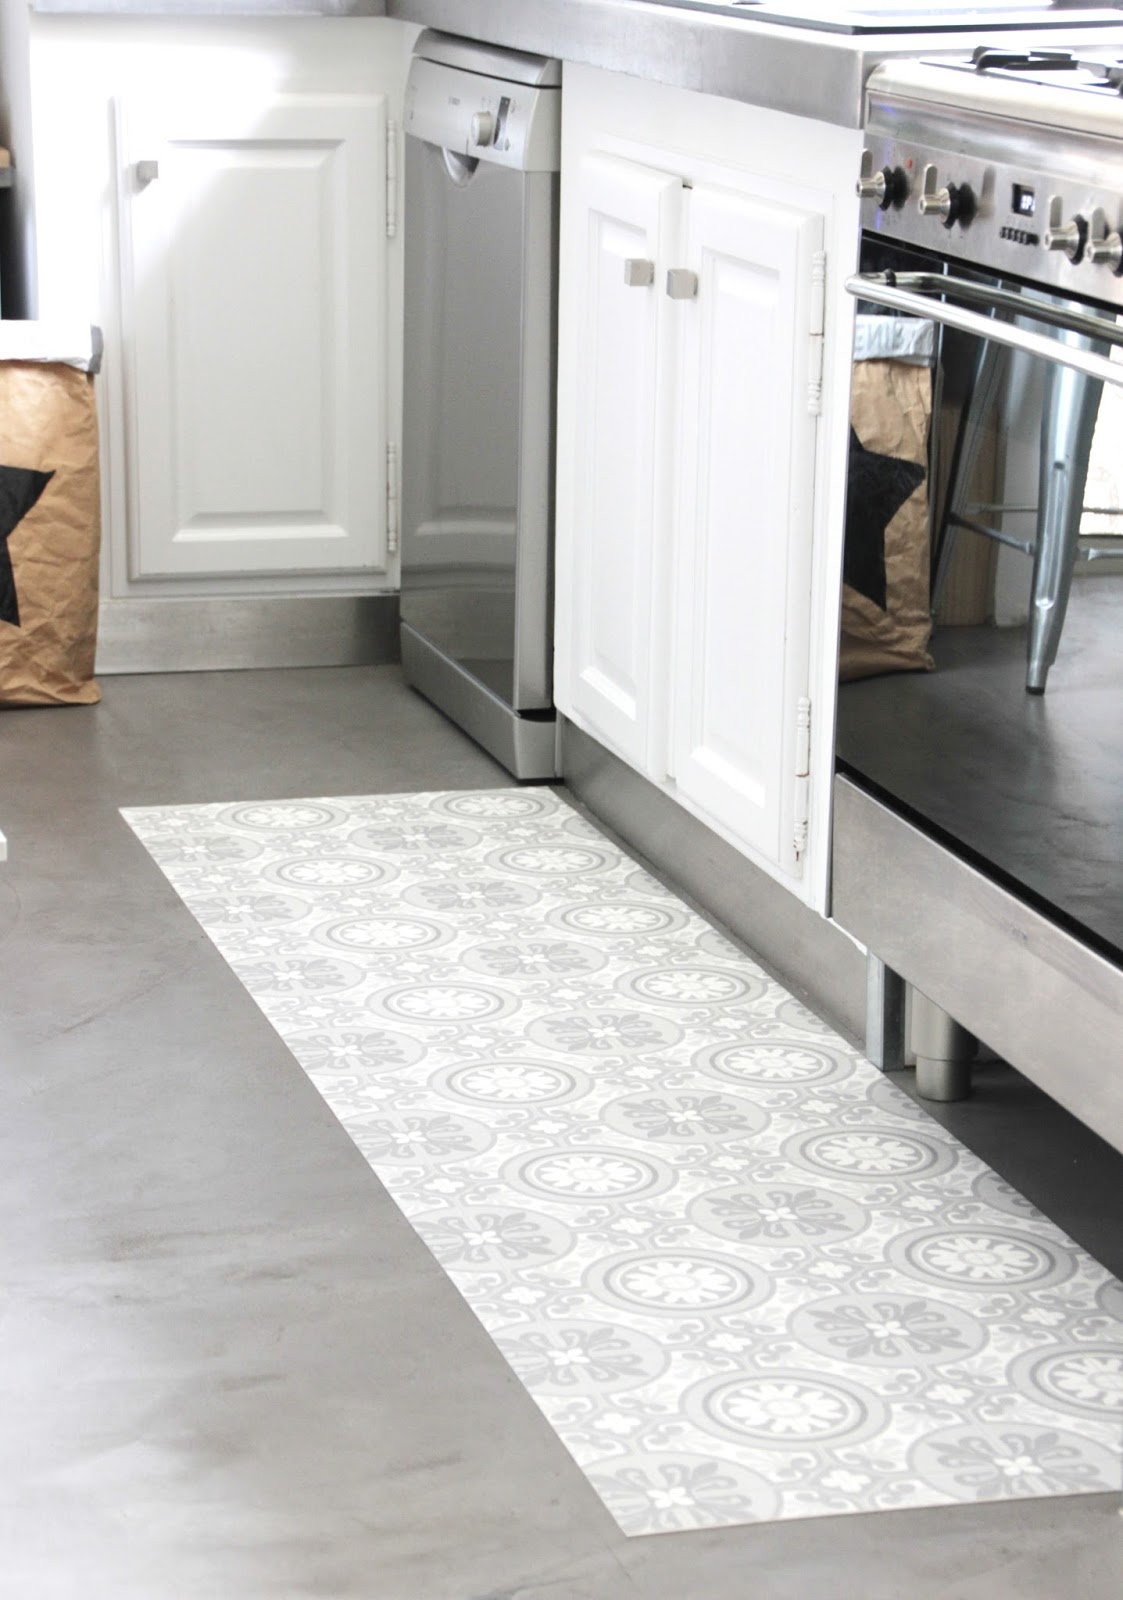 Vinyl Sol Carreaux De Ciment Regardsetmaisons Mon Tapis Vinyle Carreaux De Ciment Diy